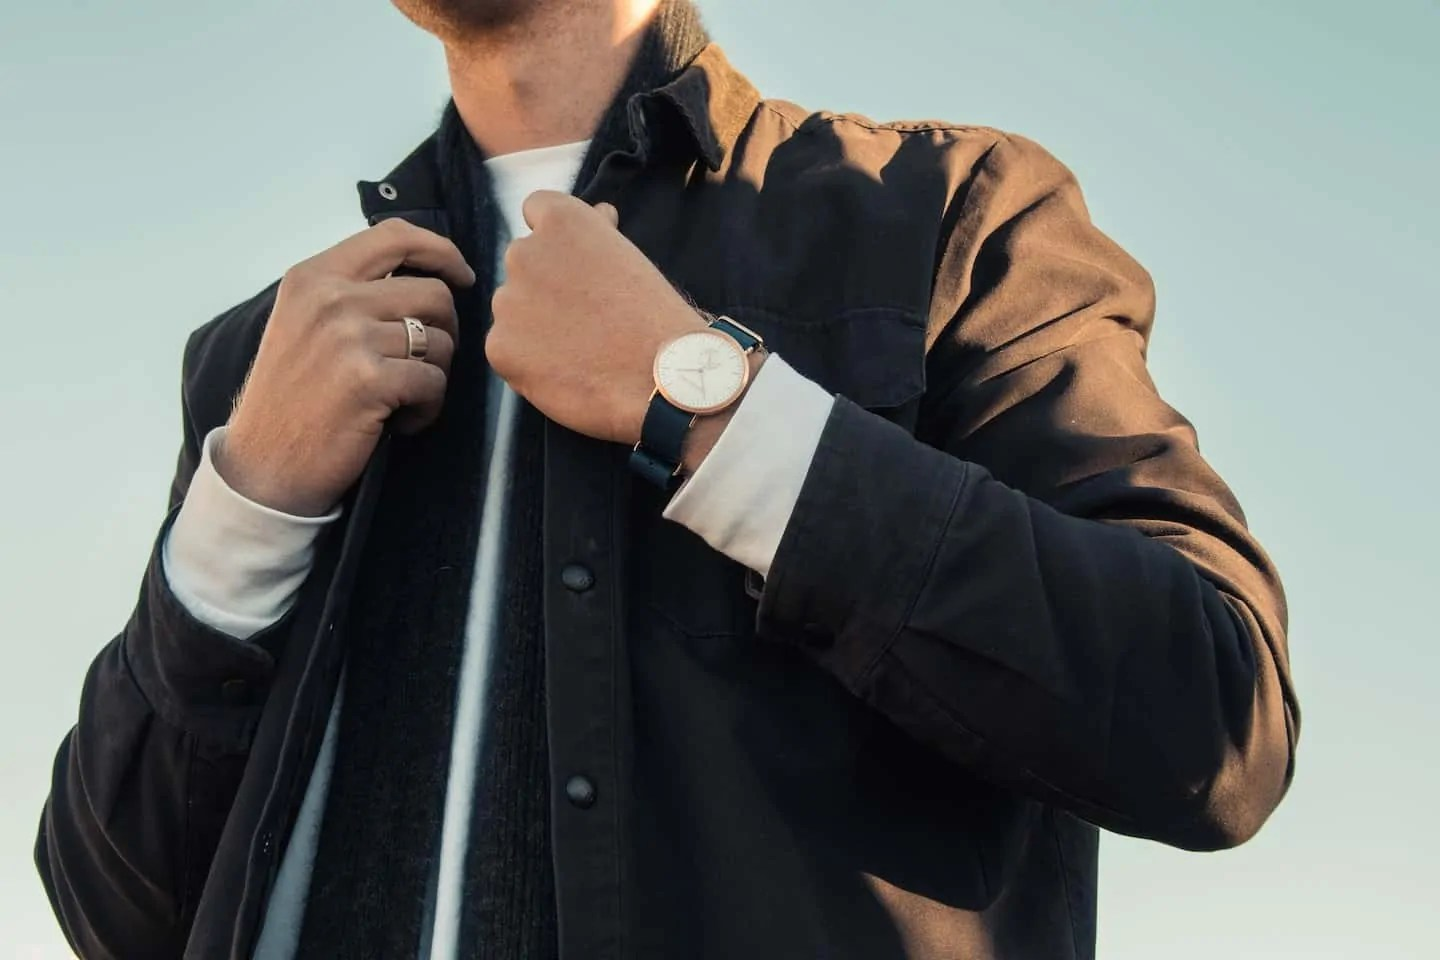 man adjusting his collar with chic watch on wrist